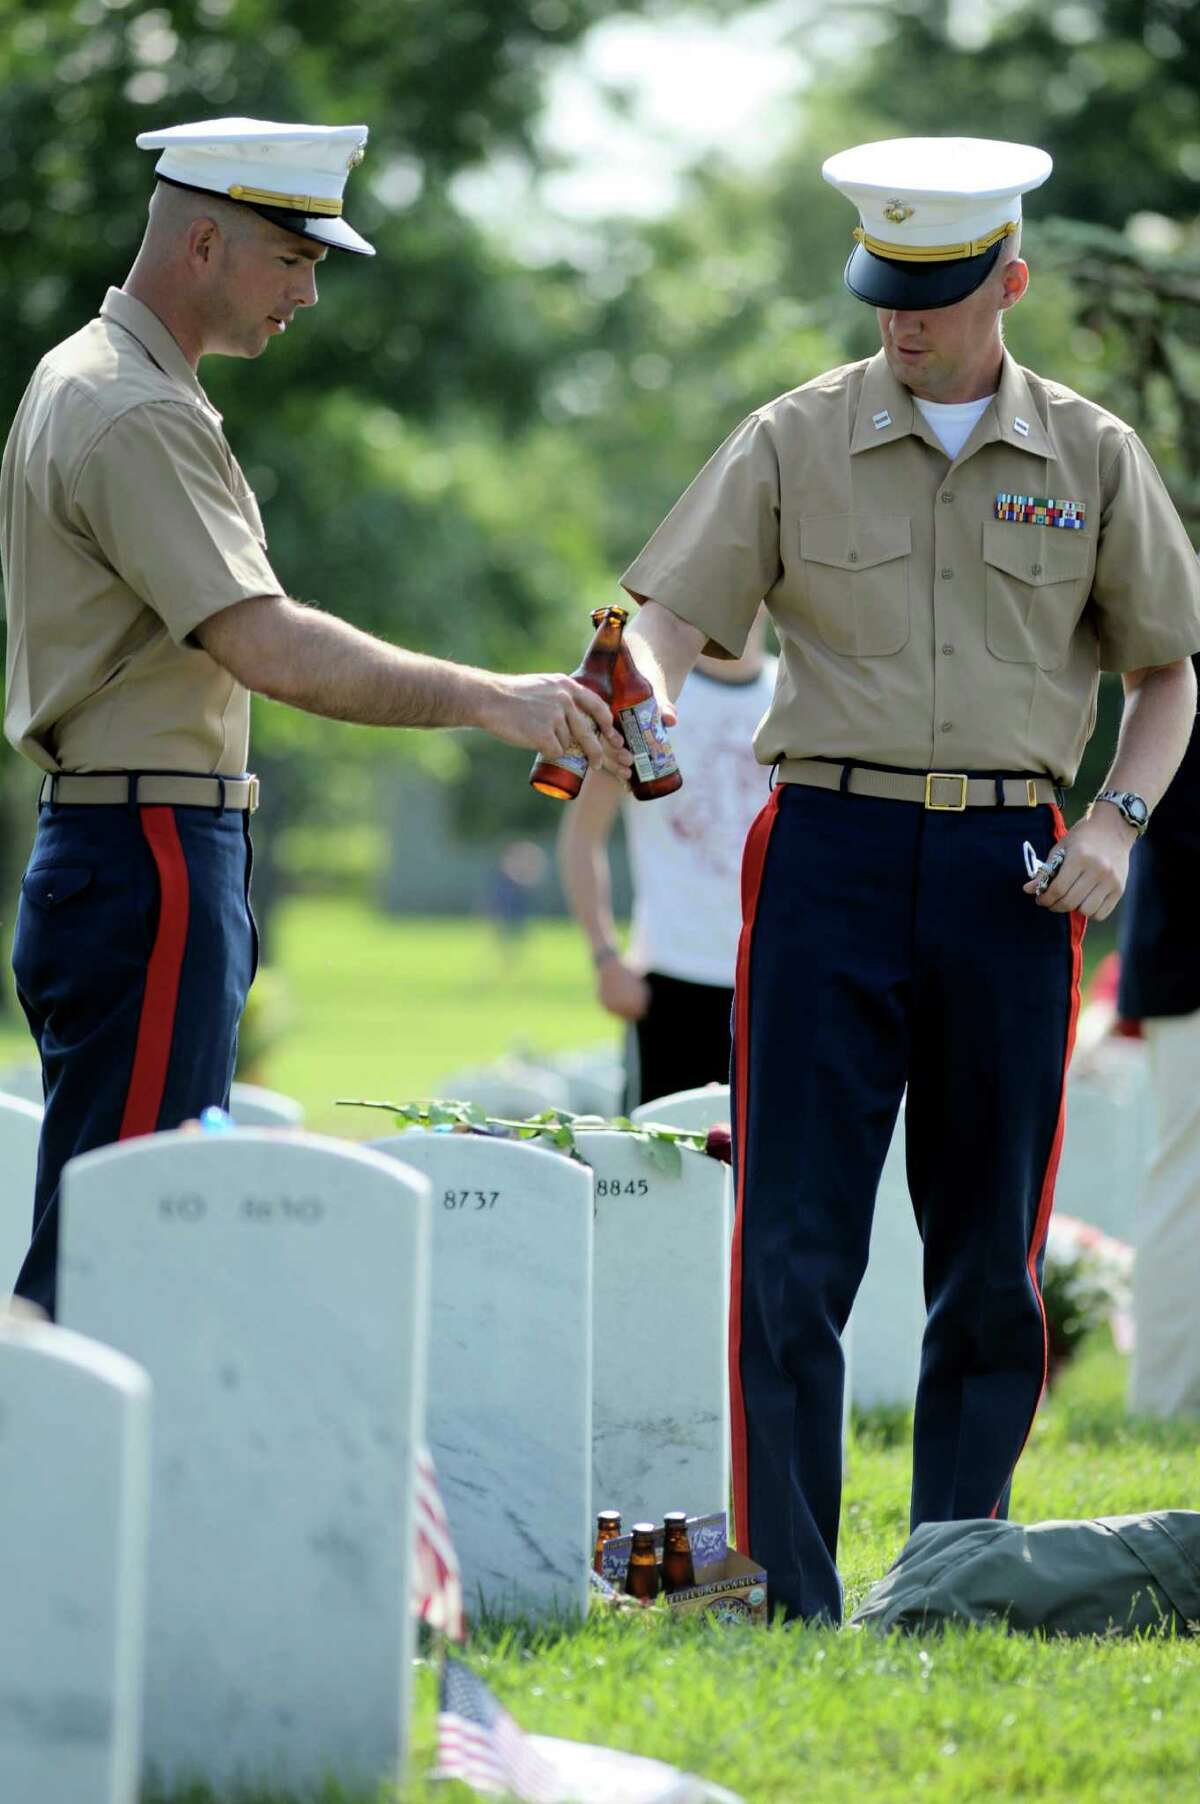 Marine Captains Brady Bustin, of Des Moines, Iowa, left, and Sean Wills, of Herndon, Va., toast fallen Marine 1st Lt. Nicholas Madrazo, in Section 60 at Arlington National Cemetery, in Arlington, Va., Monday, May 28, 2012. Madrazo, of Bothell, Wash., was killed Sept. 9, 2008, by a roadside bomb in Parwan province, Afghanistan